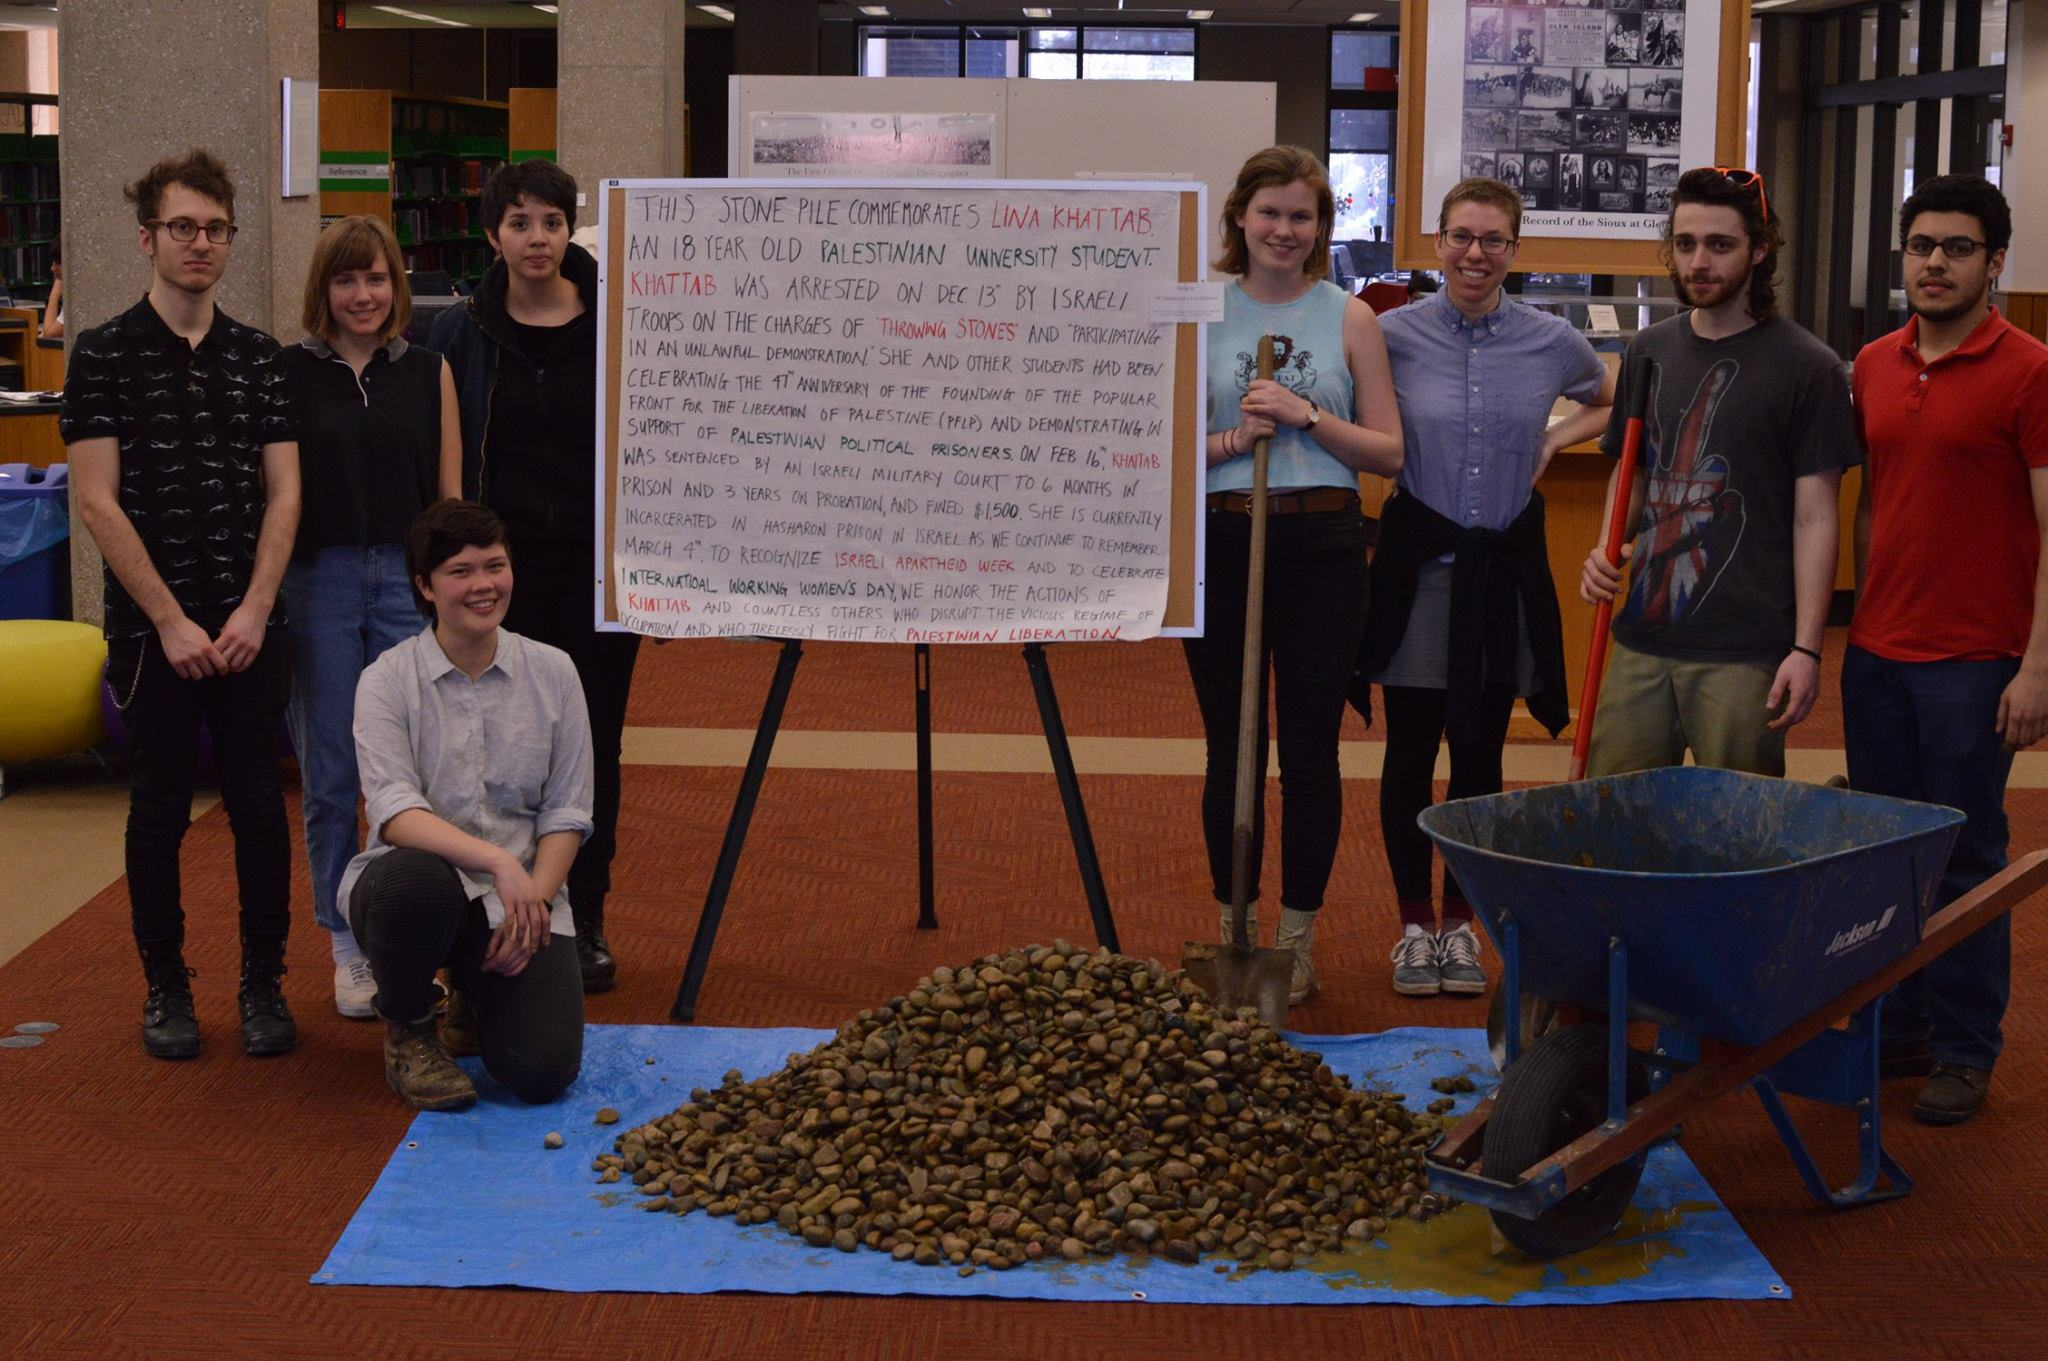 Oberlin Students Highlight Plight of Palestinian Political Prisoners with Week-Long Installation